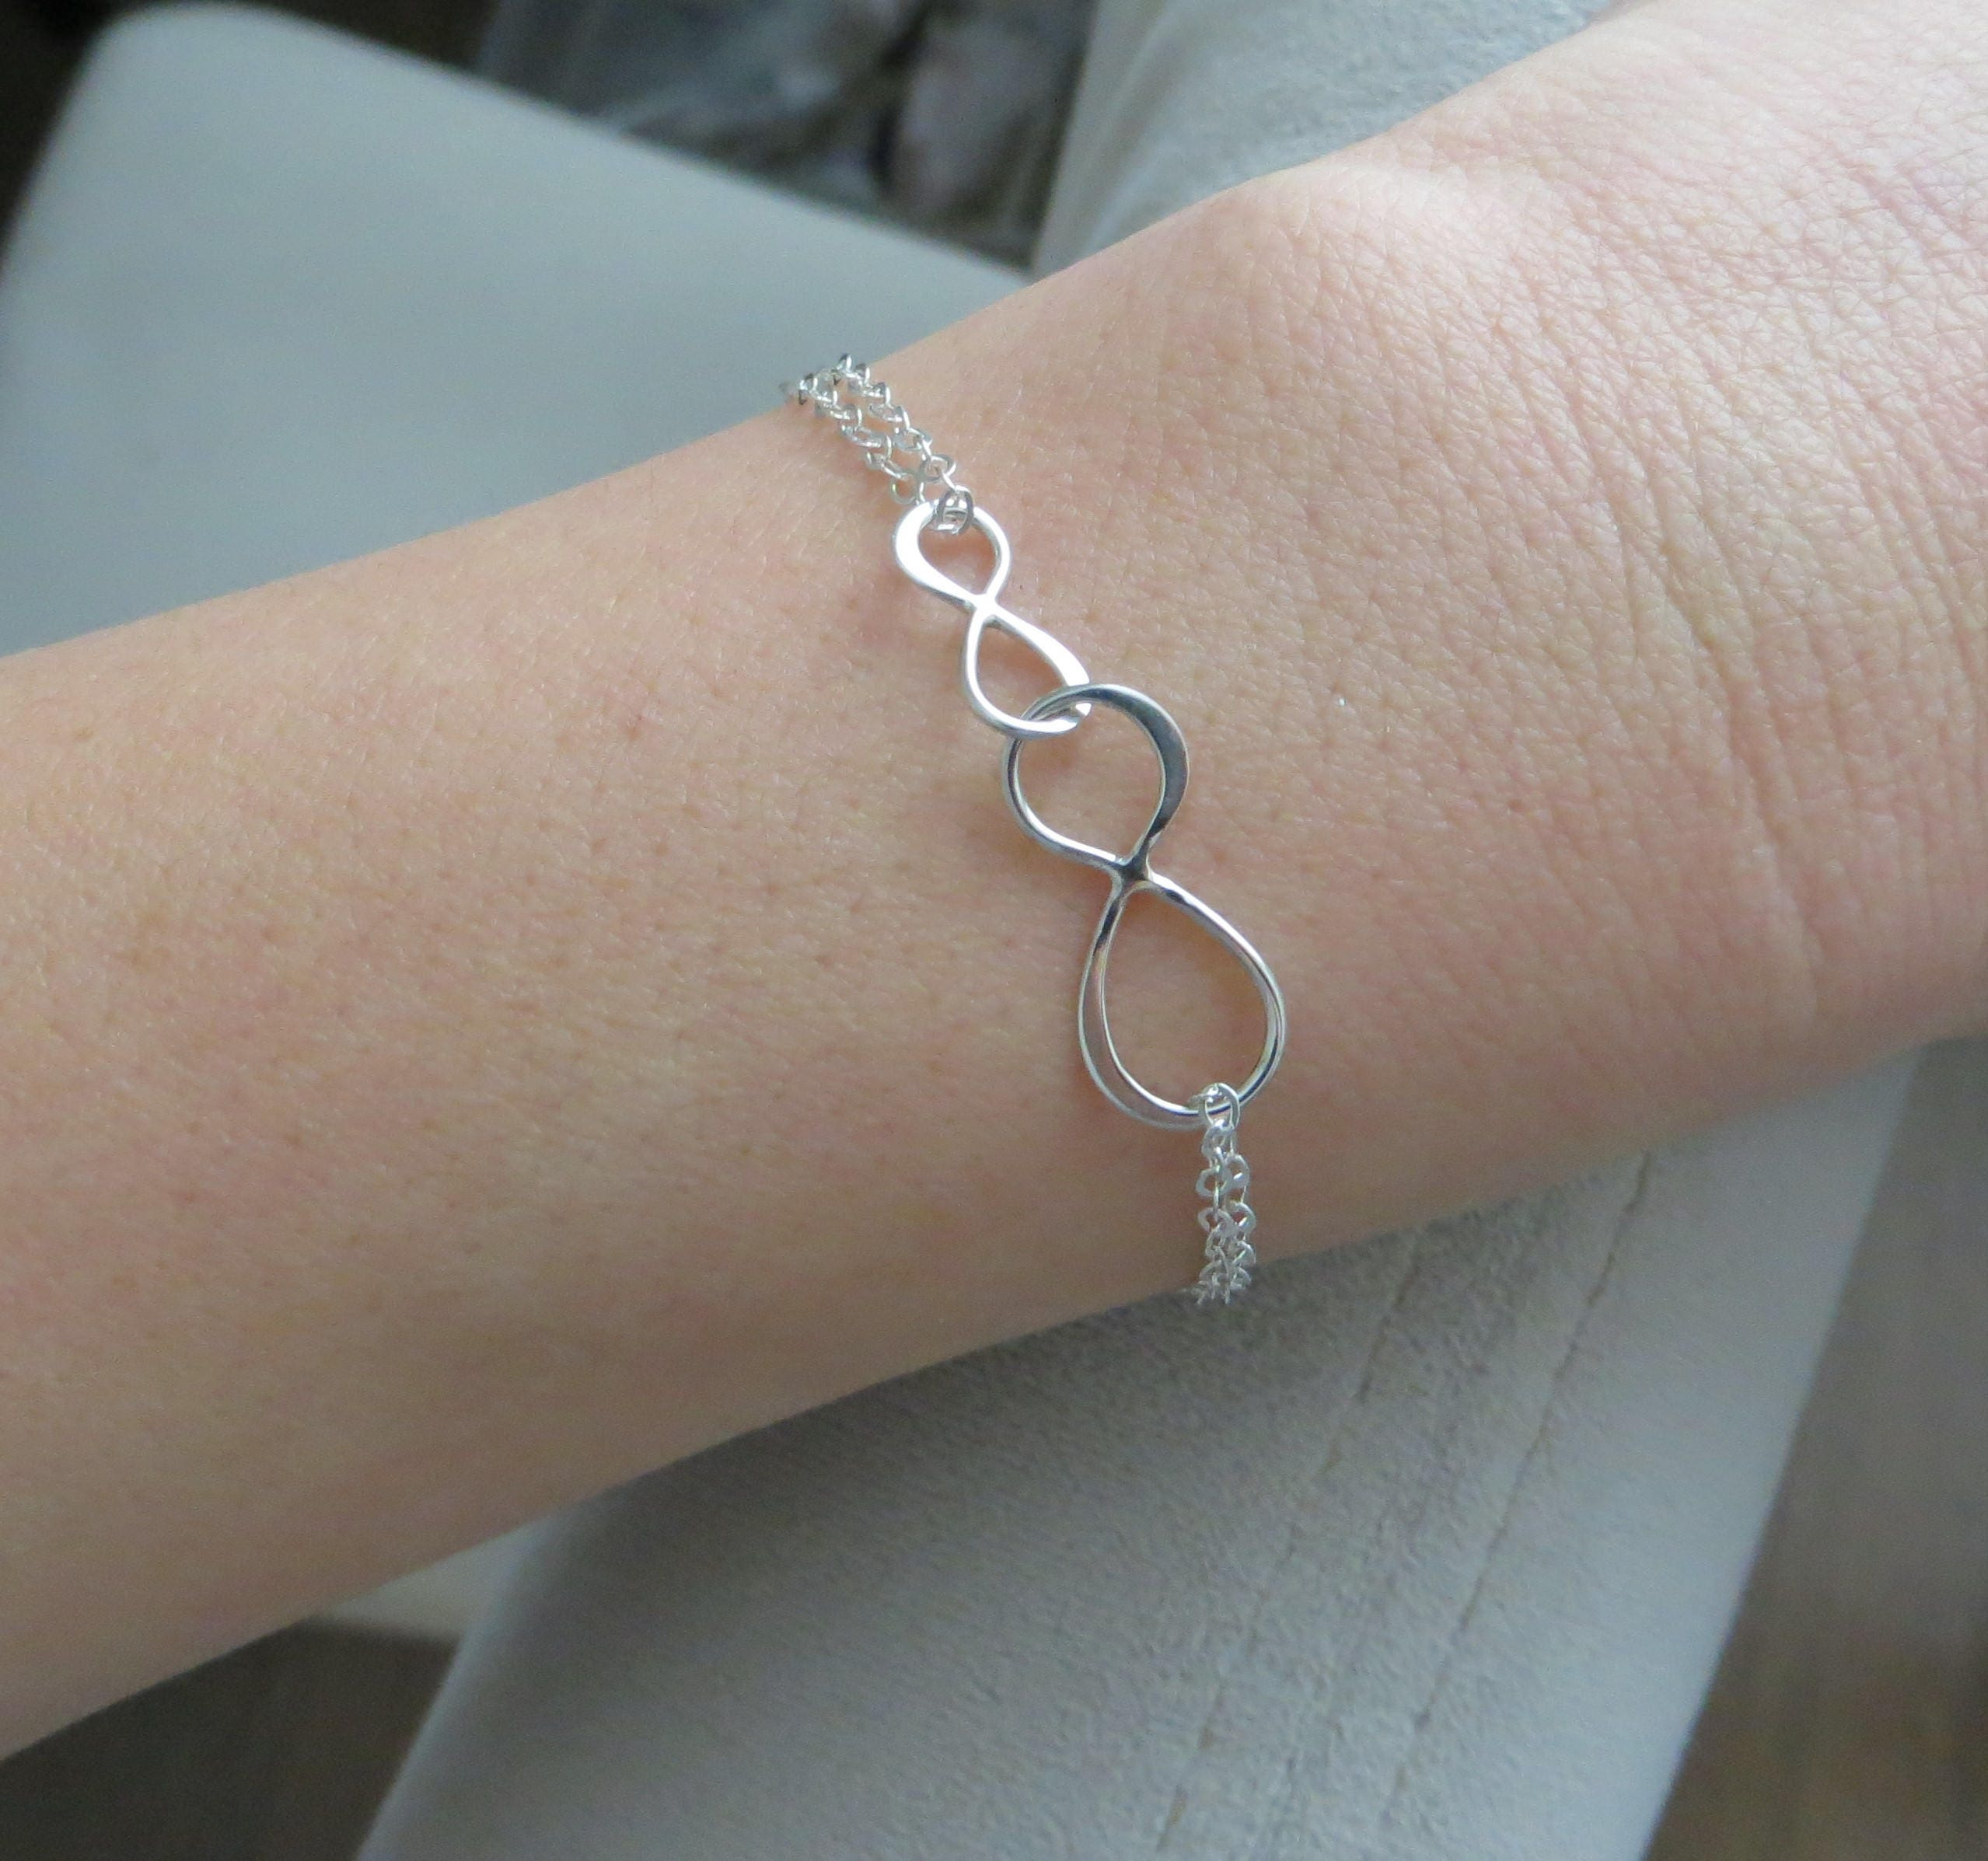 jewelry mother interlocking bracelet cropped bracelets day jennifer circles products silver two mothers daughter x gift infinity circle sterling